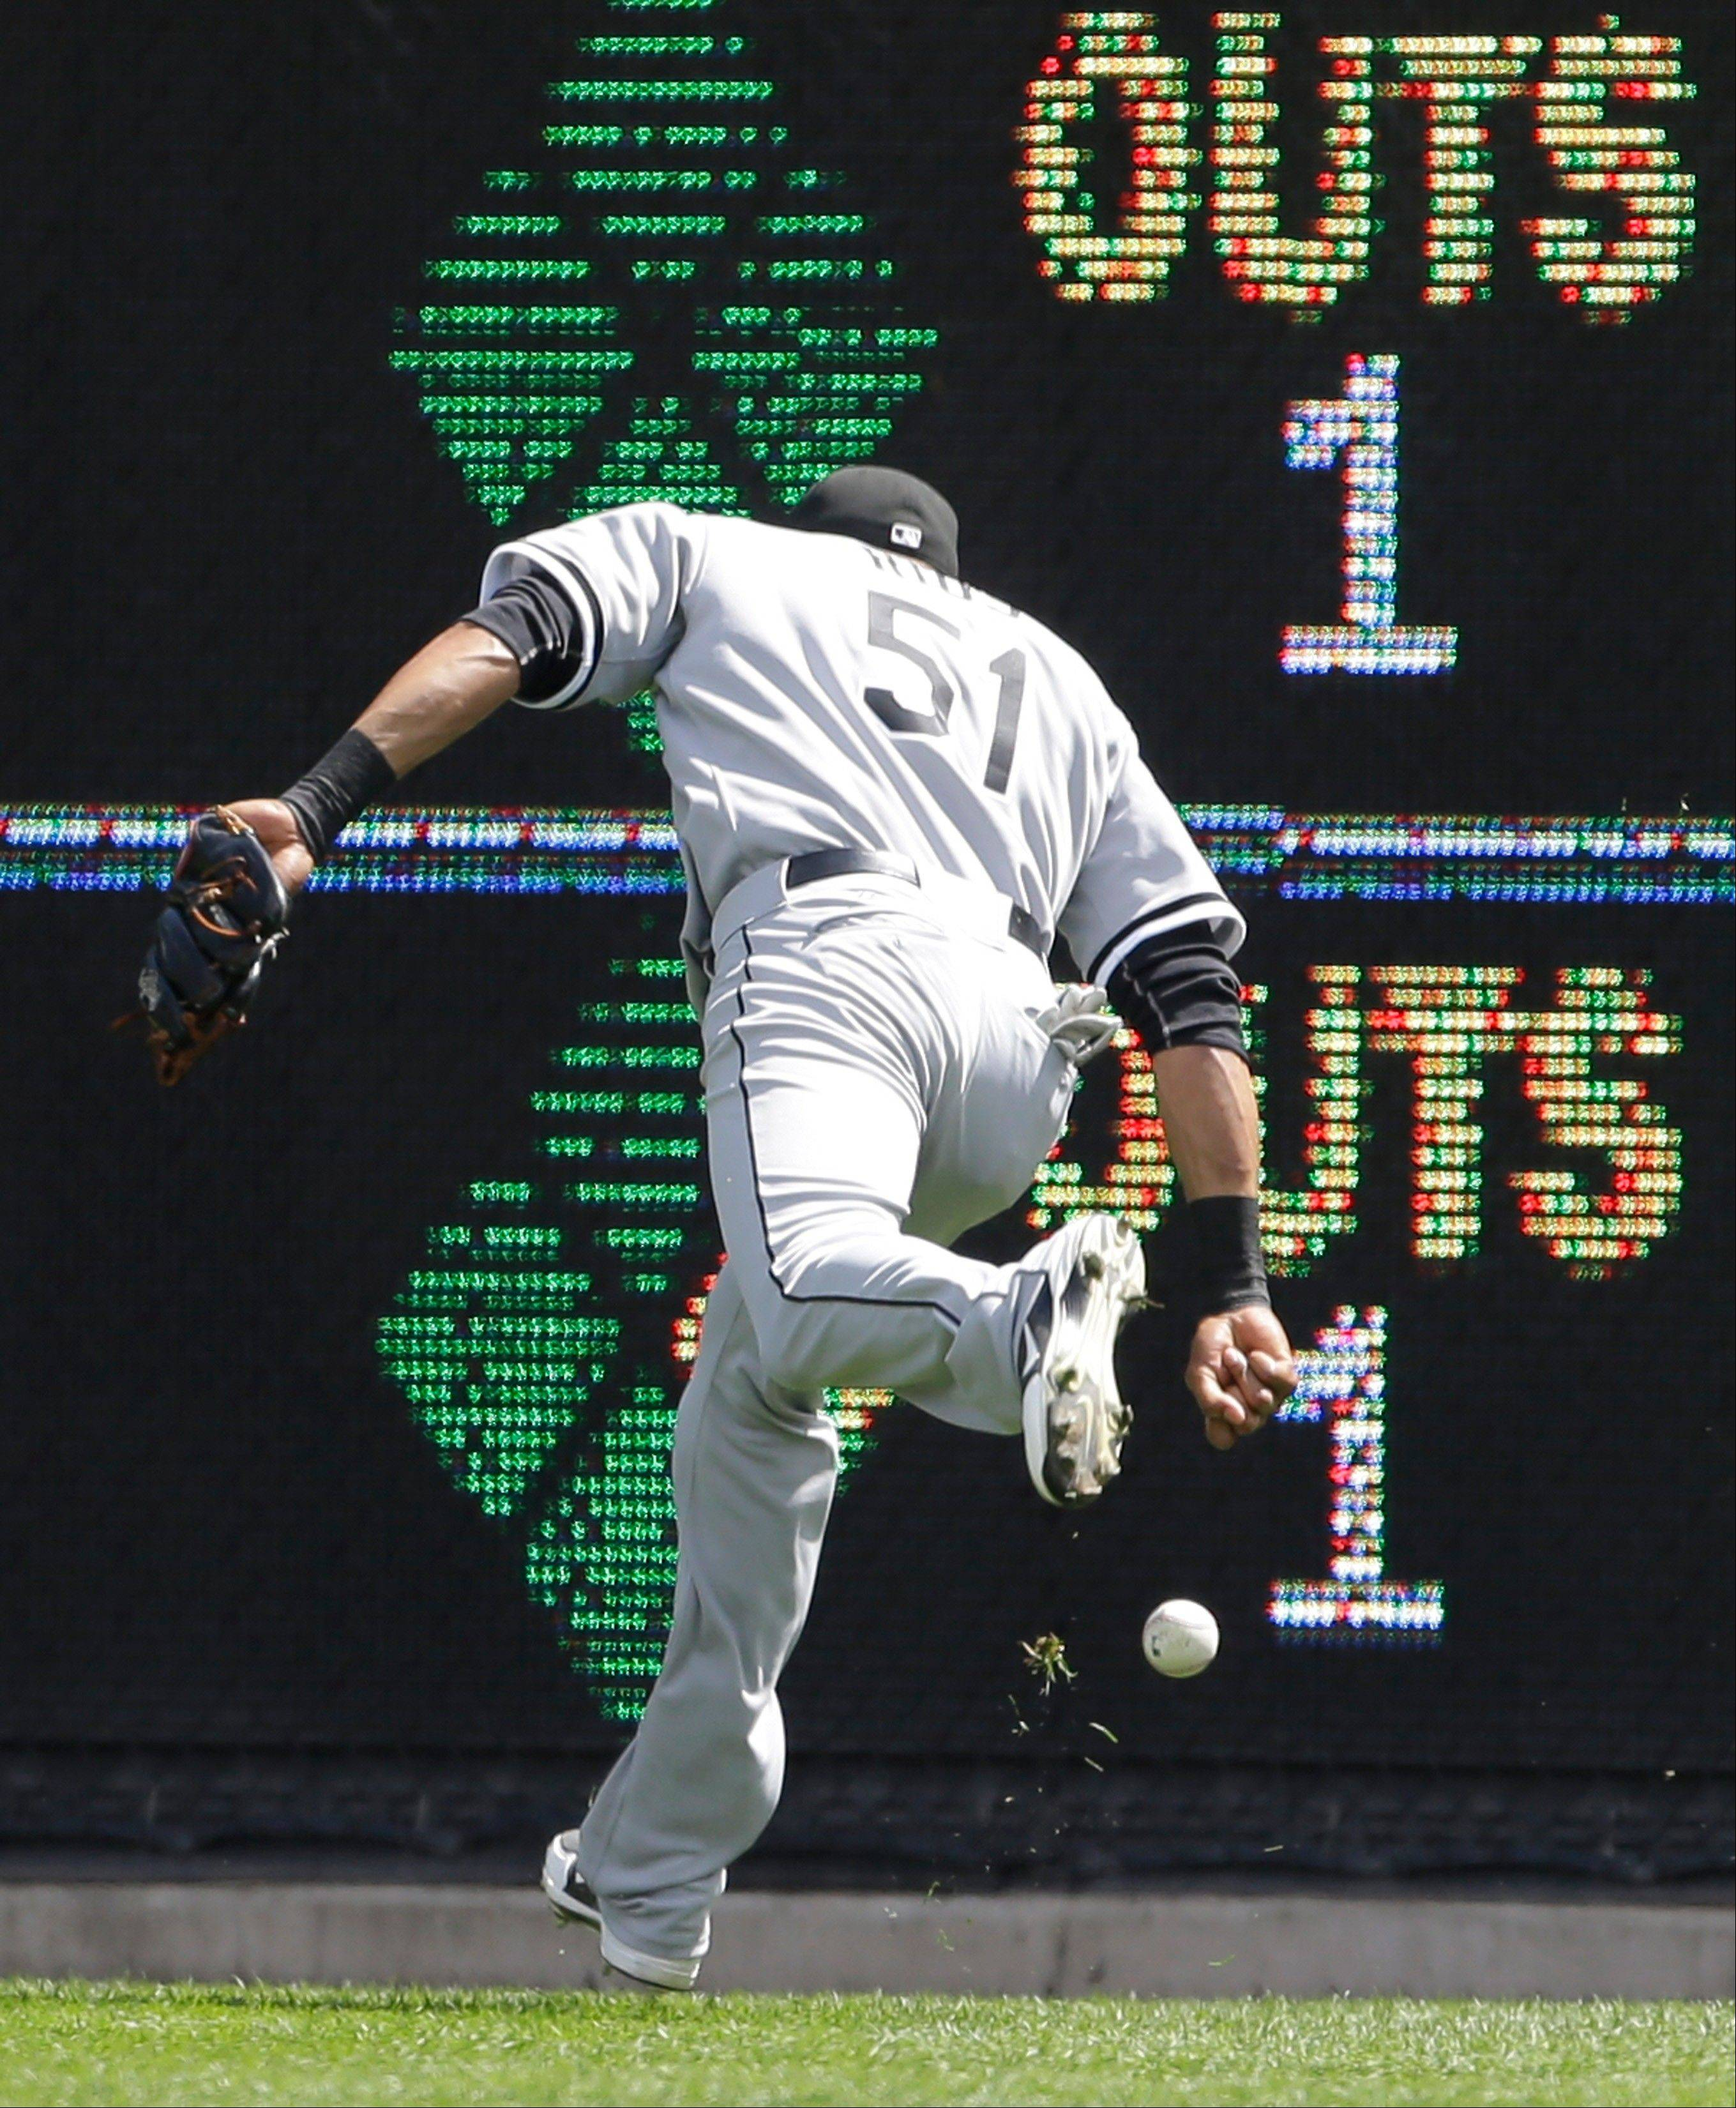 White Sox right fielder Alex Rios chases a ball hit for an RBI double by Detroit Tigers' Alex Avila during the seventh inning Sunday in Detroit.